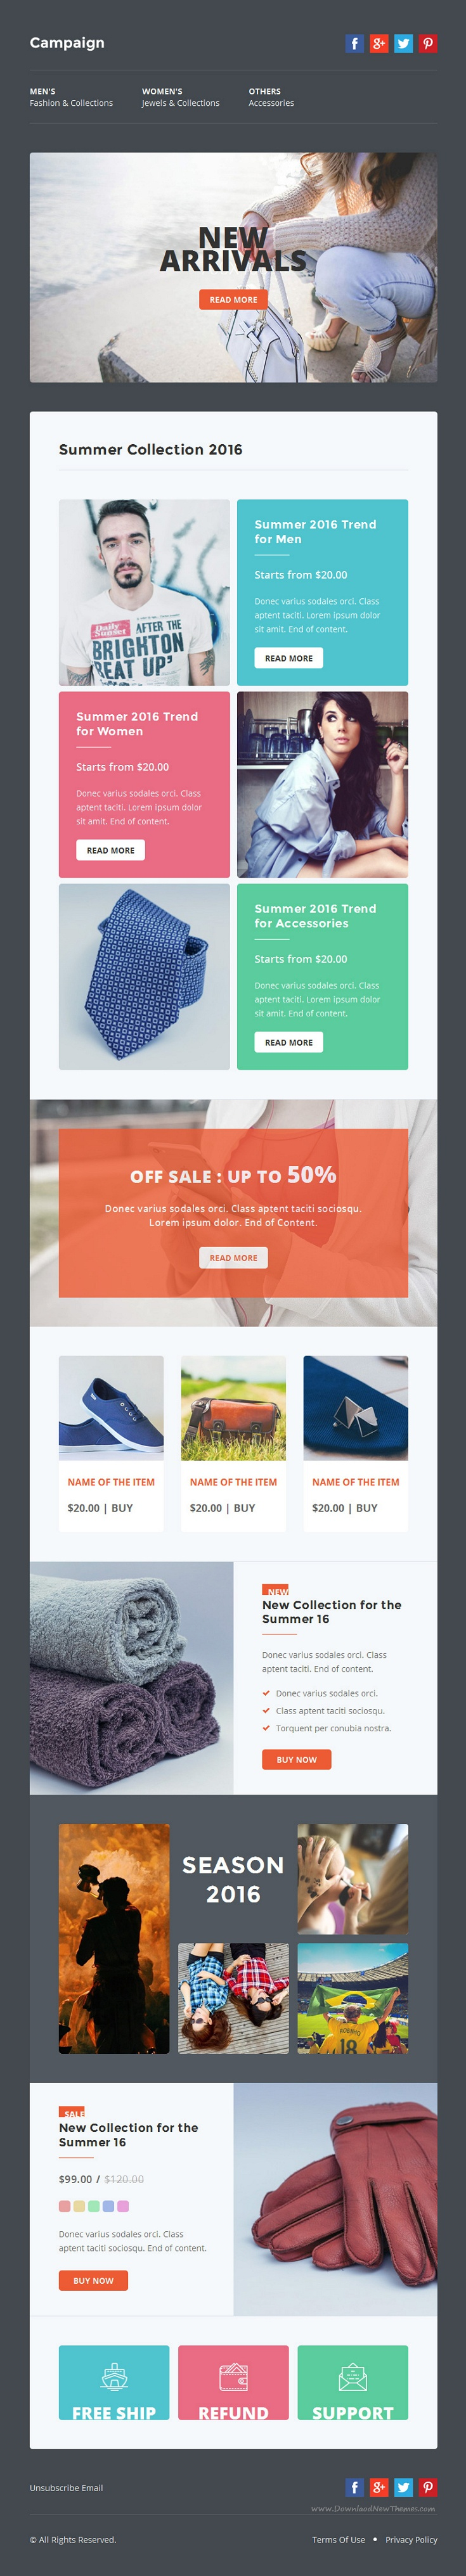 Top Notch Email Marketing Suggestions To Help Your Business ...